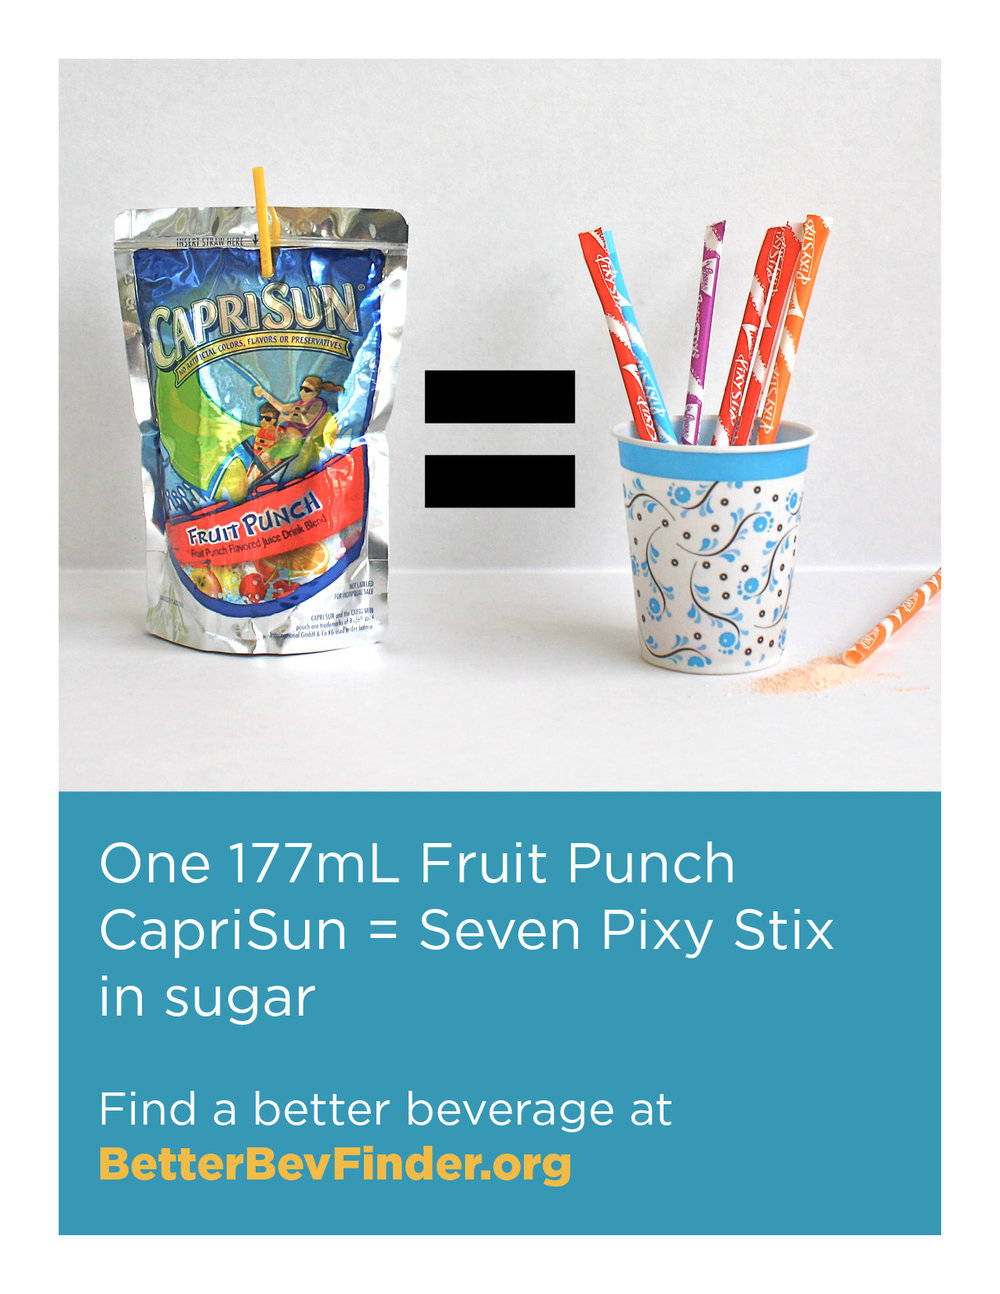 Image from Howard County Unsweetened depicting how CapriSun is liquid candy.